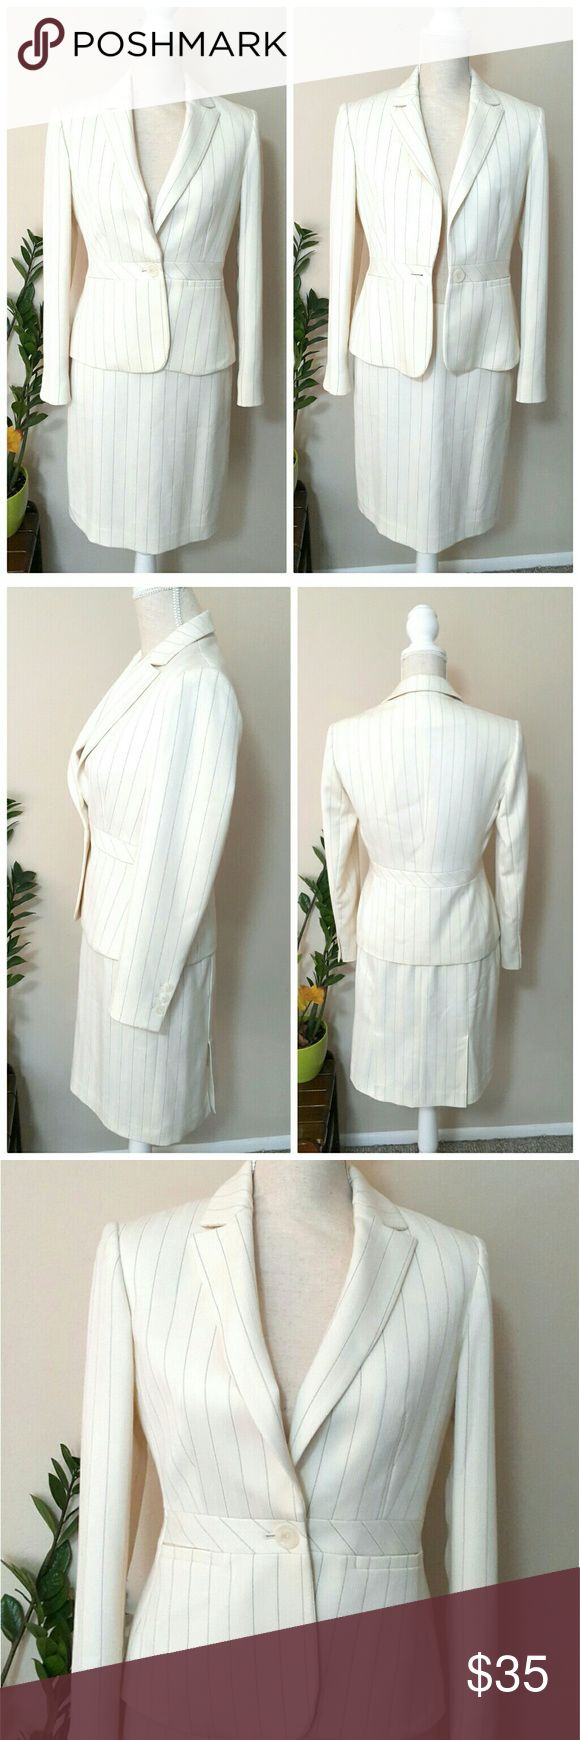 "Jones New York 2 Pc White Suit Blazer & Skirt Elegant Women's 2-Piece Modern Fit Suit Set from Jones New York Suit Petite in Off White Color and Striped Pattern, Size 4P. Pre-owned and in great shape and condition. Very fine looking suit set that's perfect for interview or important meeting. Price includes both blazer and skirt (fully lined).  Retail $159.  ℹ Blazer measurements: Laid flat, pit to pit 17"" / shoulders 15"" sleeve 22.5"" / length 23"" shoulder to hem  ℹ Skirt measurements: Laid…"